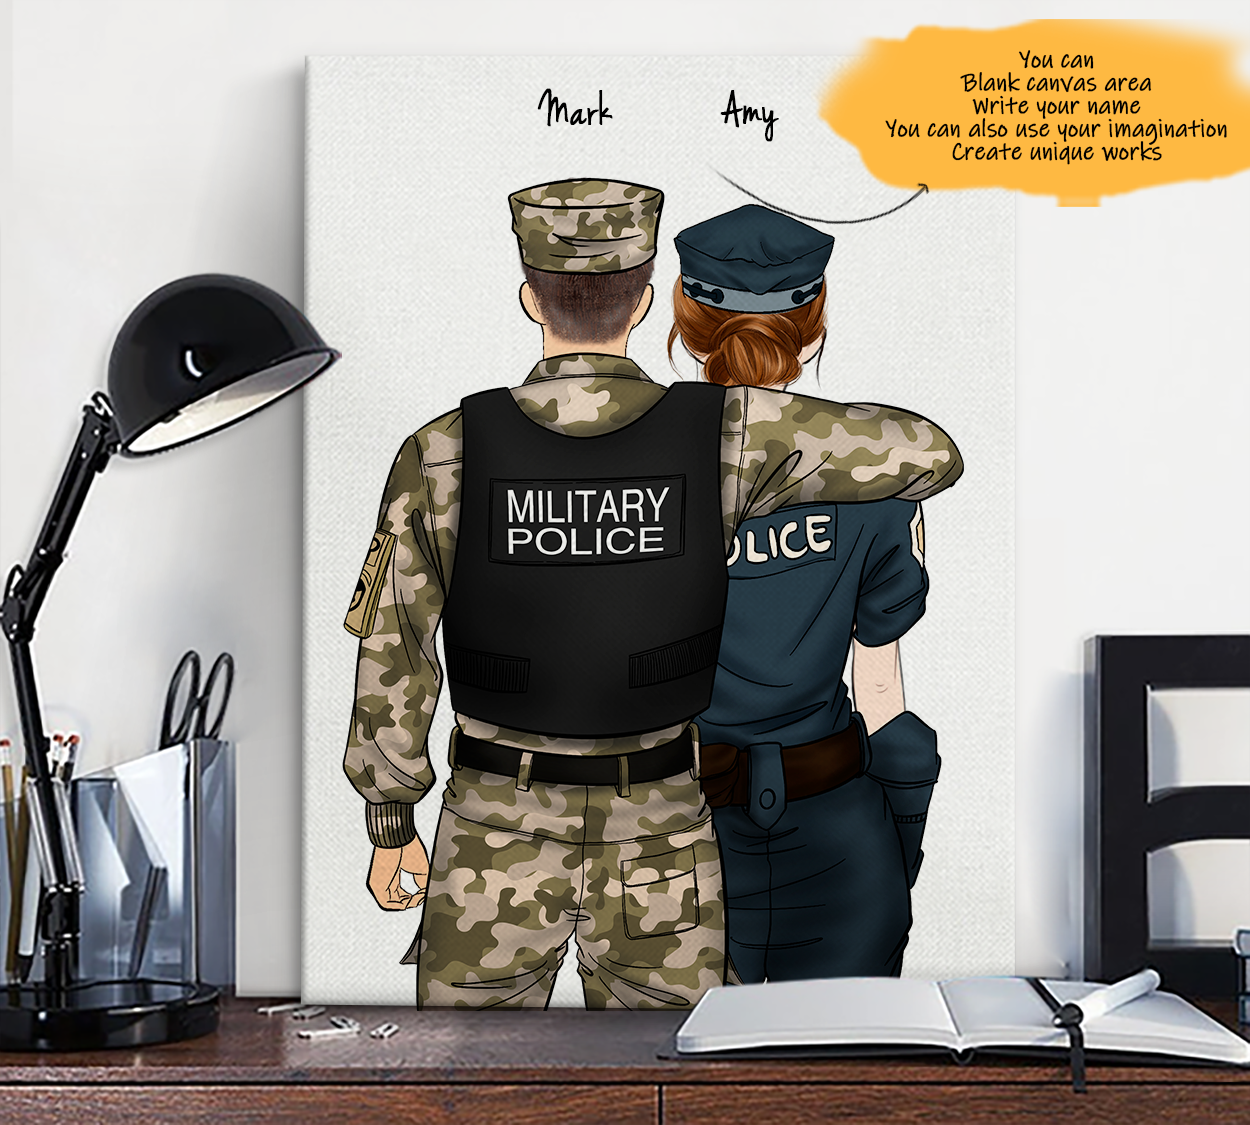 He is My Friend! Hand Draw Custom Canvas-Print Gift Military Police US-Light&Police1